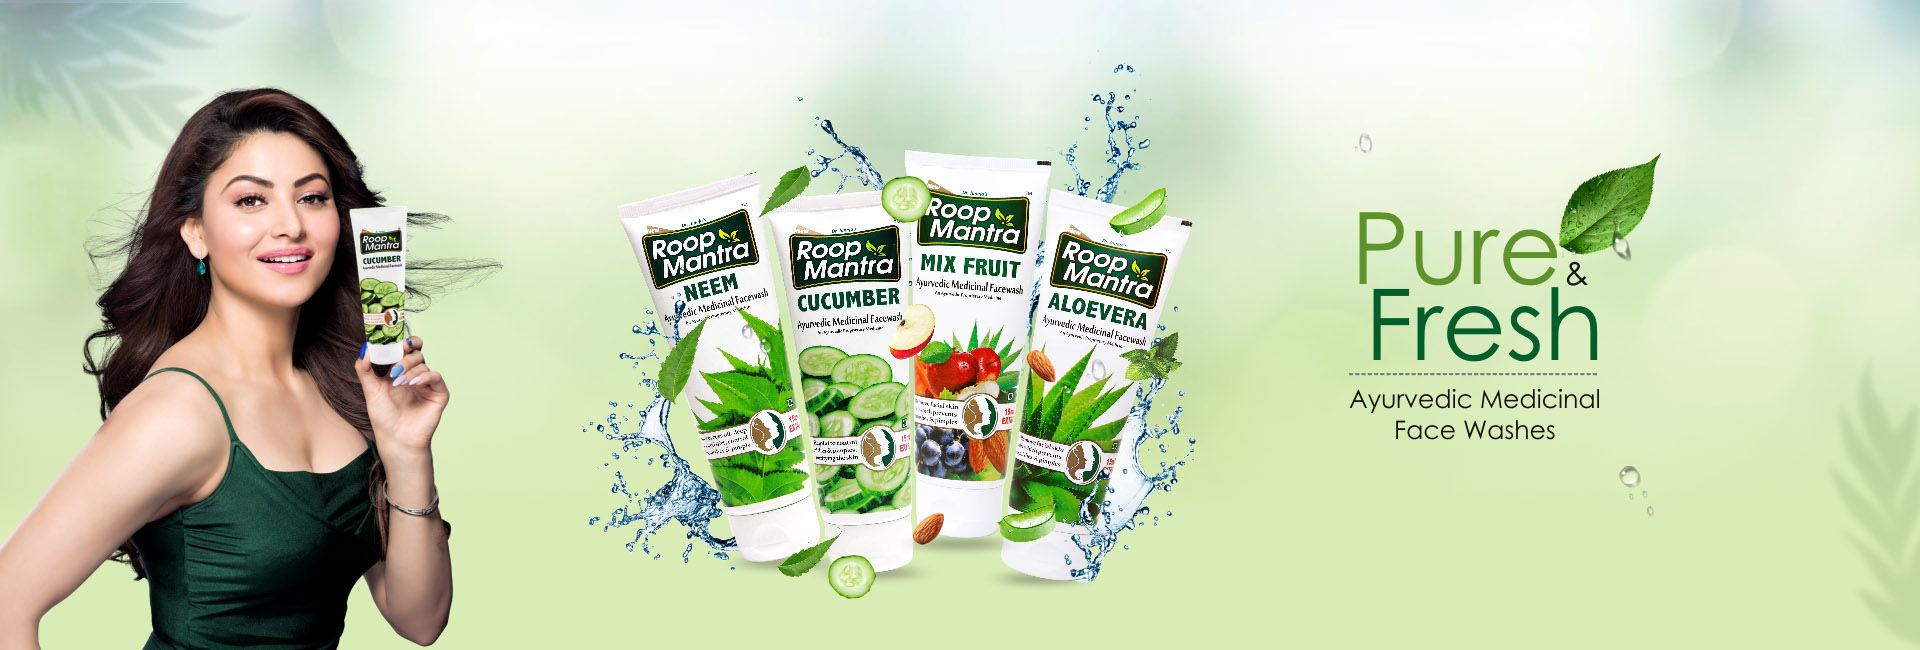 best-ayurvedic-roop-manta-Neem-and-Mix-Fruit-lime-mint-aloevera-cucumber-face-wash